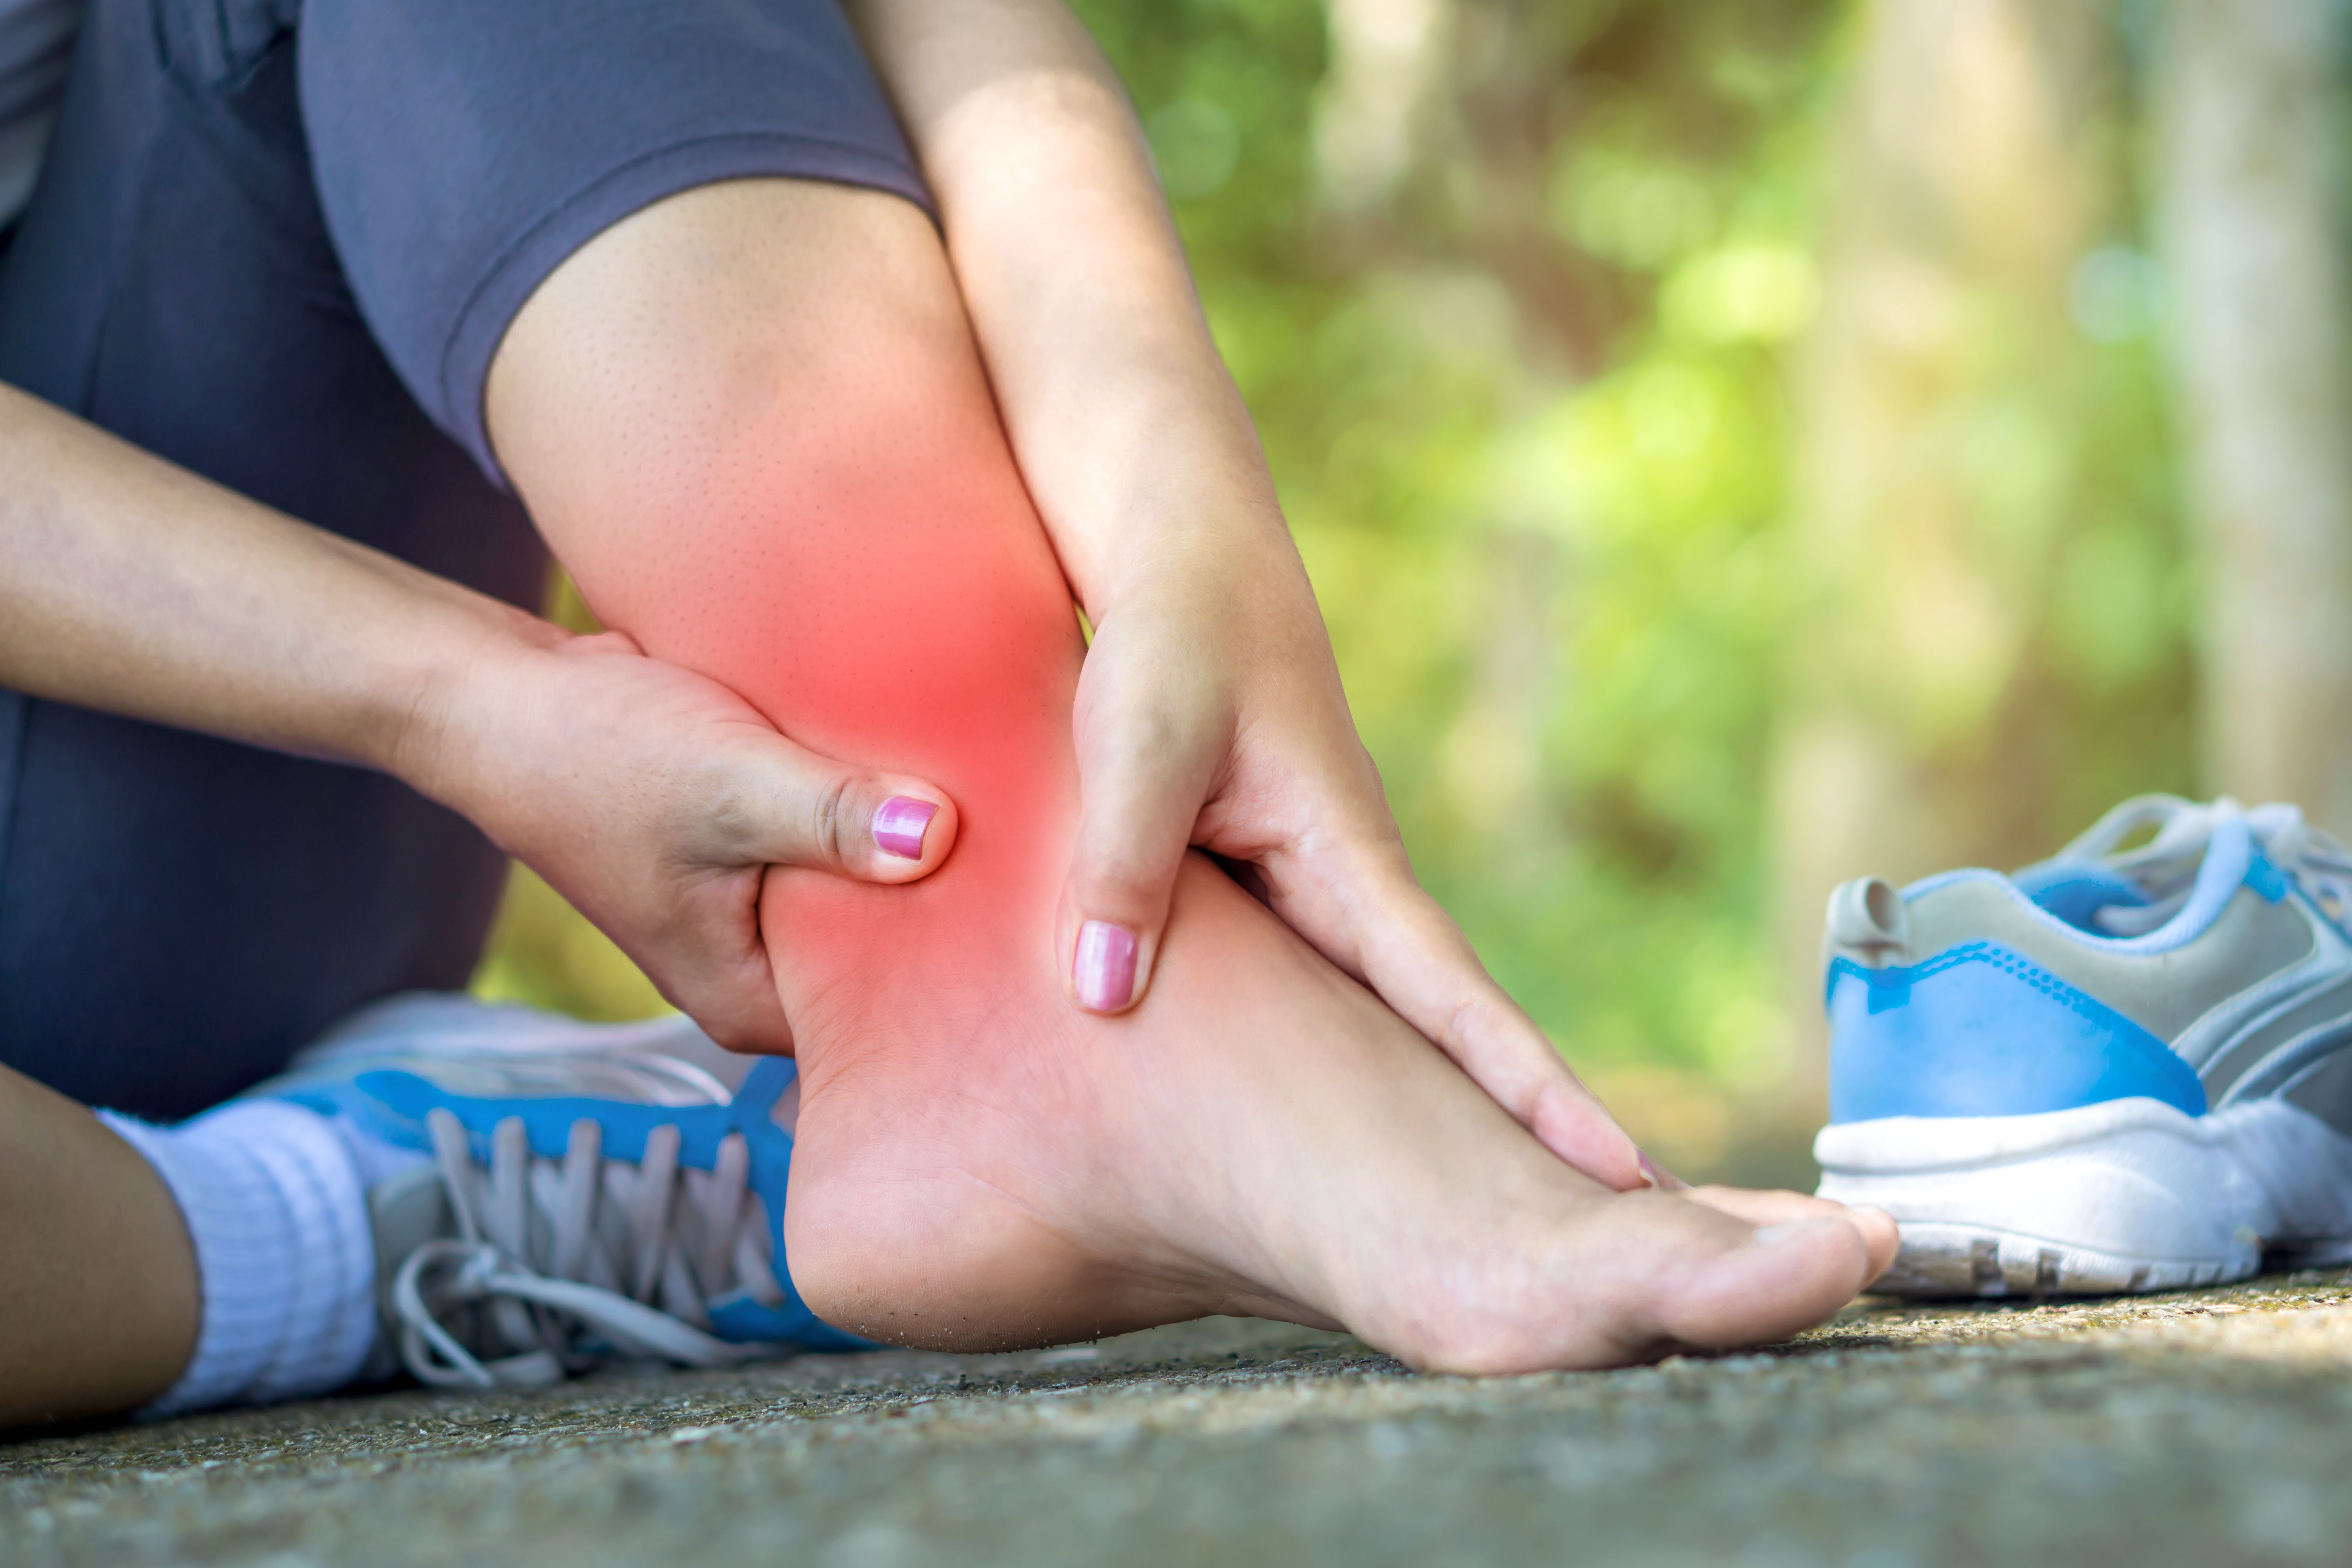 Broken ankle sprained ankle sprain ankle sprain recovery